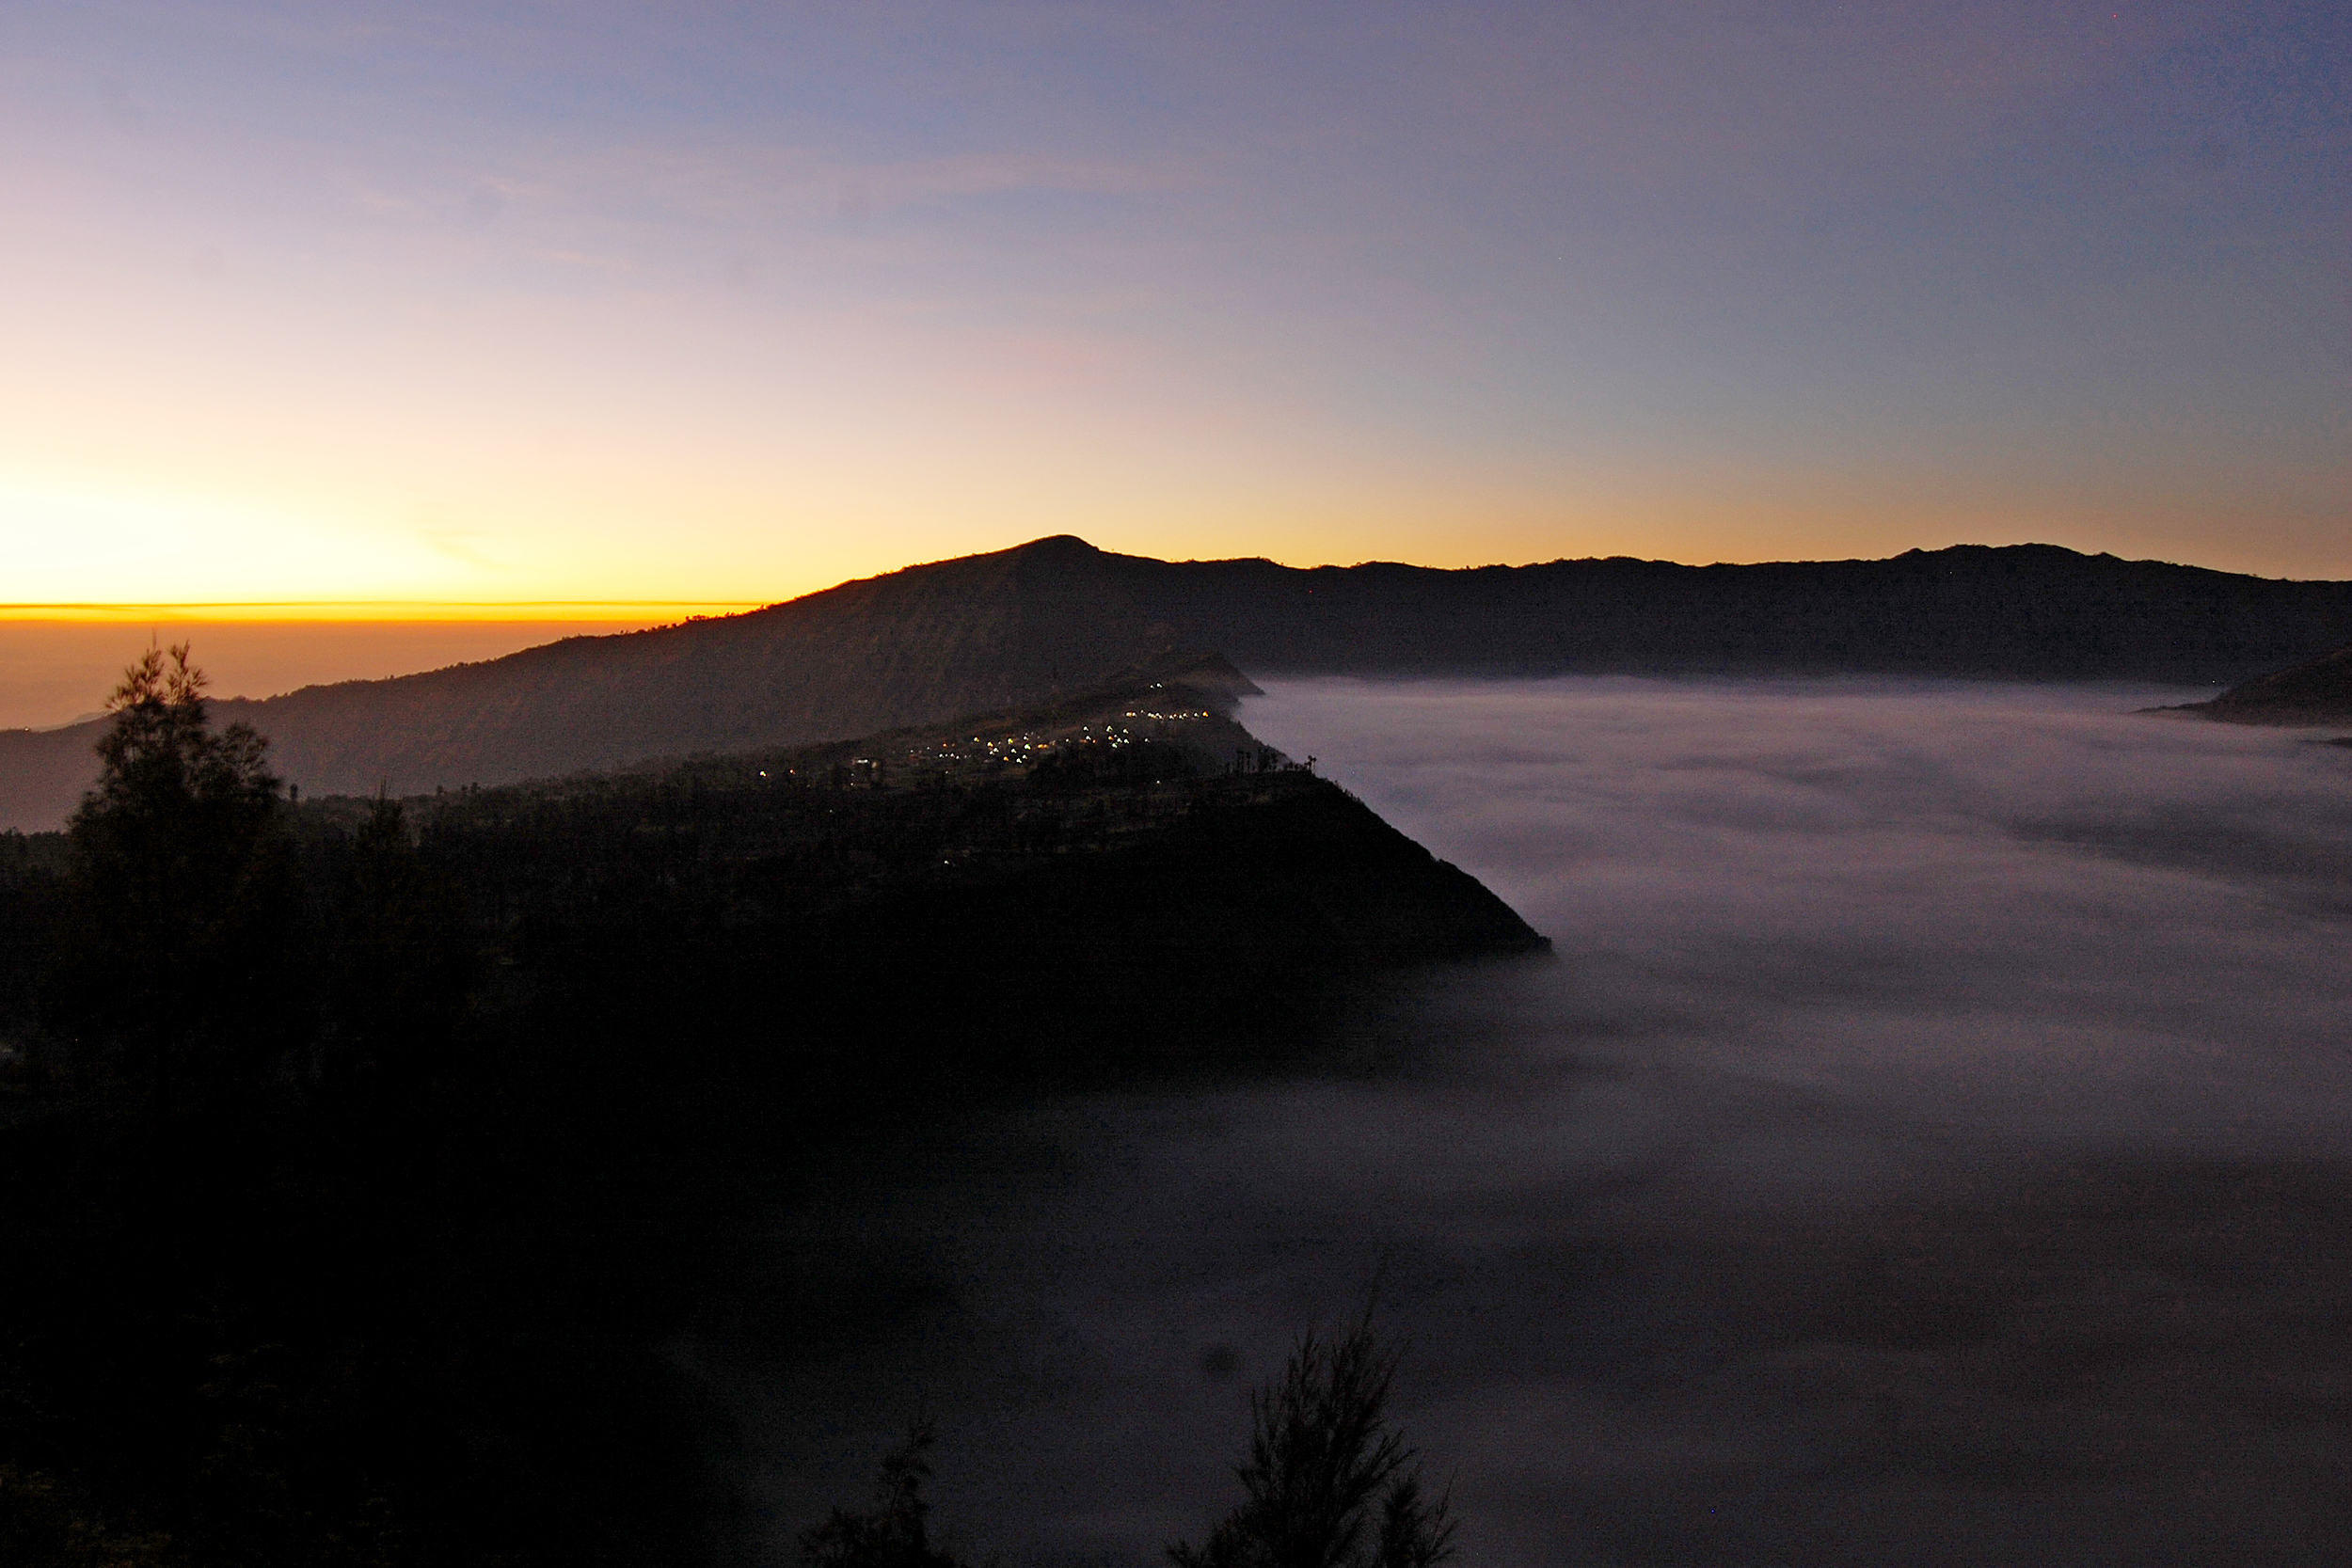 Views from the top of mount bromo at sunrise